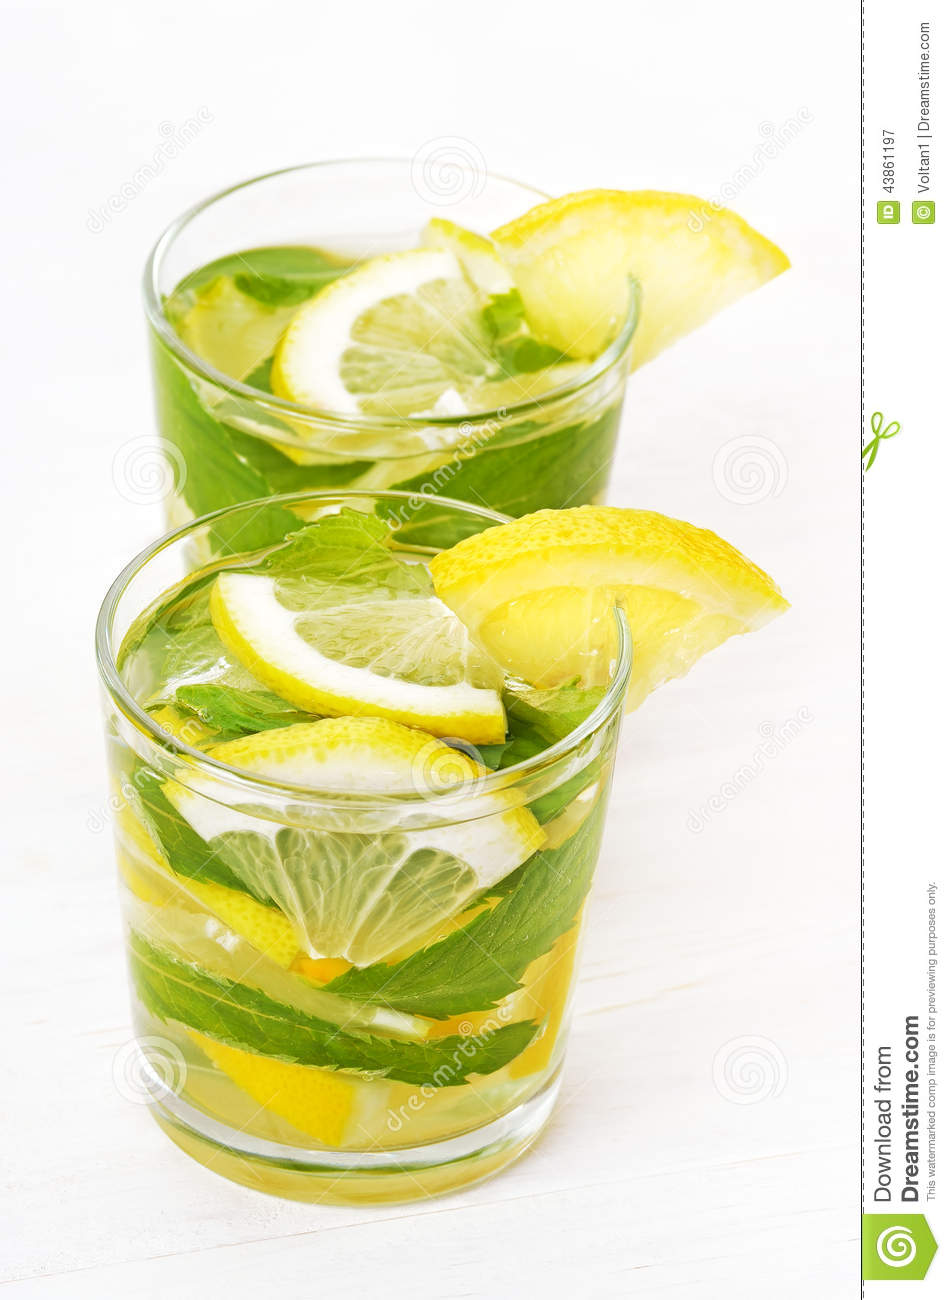 Lemonade With Fresh Lemon And Mint Stock Photo - Image: 43861197